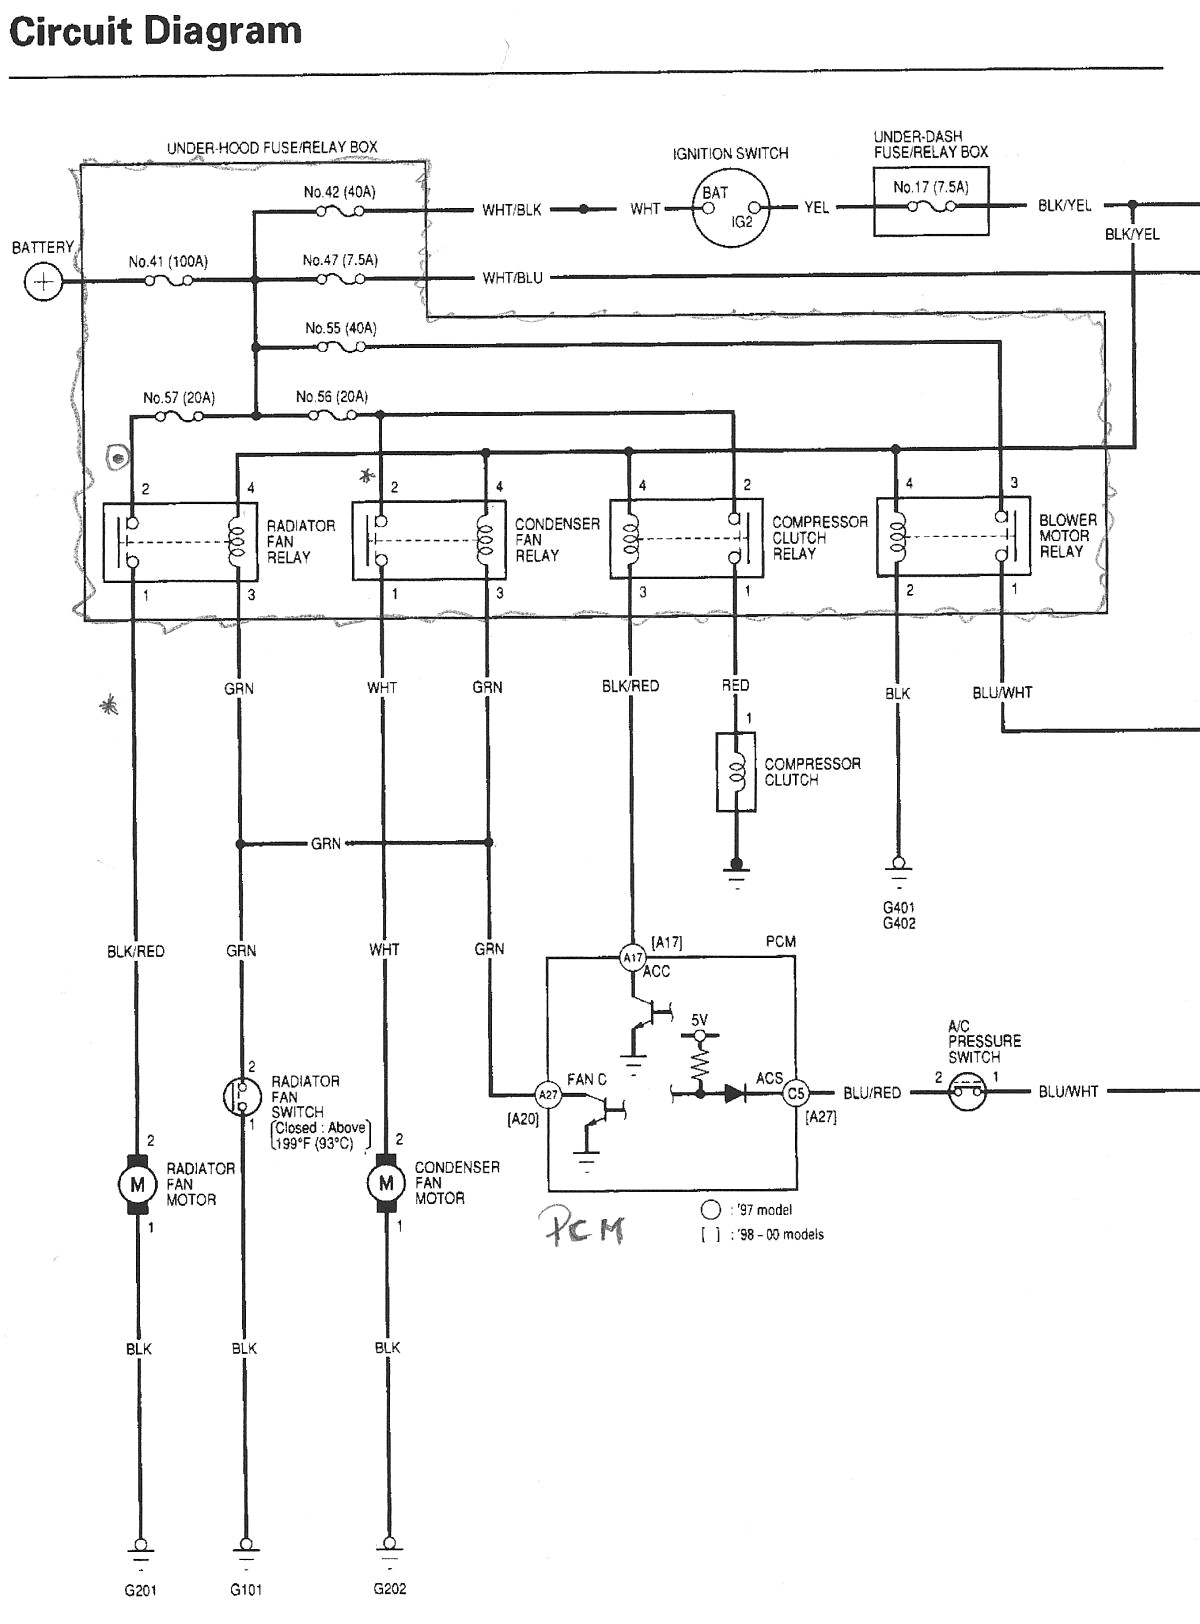 1998 Honda Accord Engine Diagram Wiring Diagram 2003 Honda Accord Yhgfdmuor Net Beauteous Blurts Of 1998 Honda Accord Engine Diagram